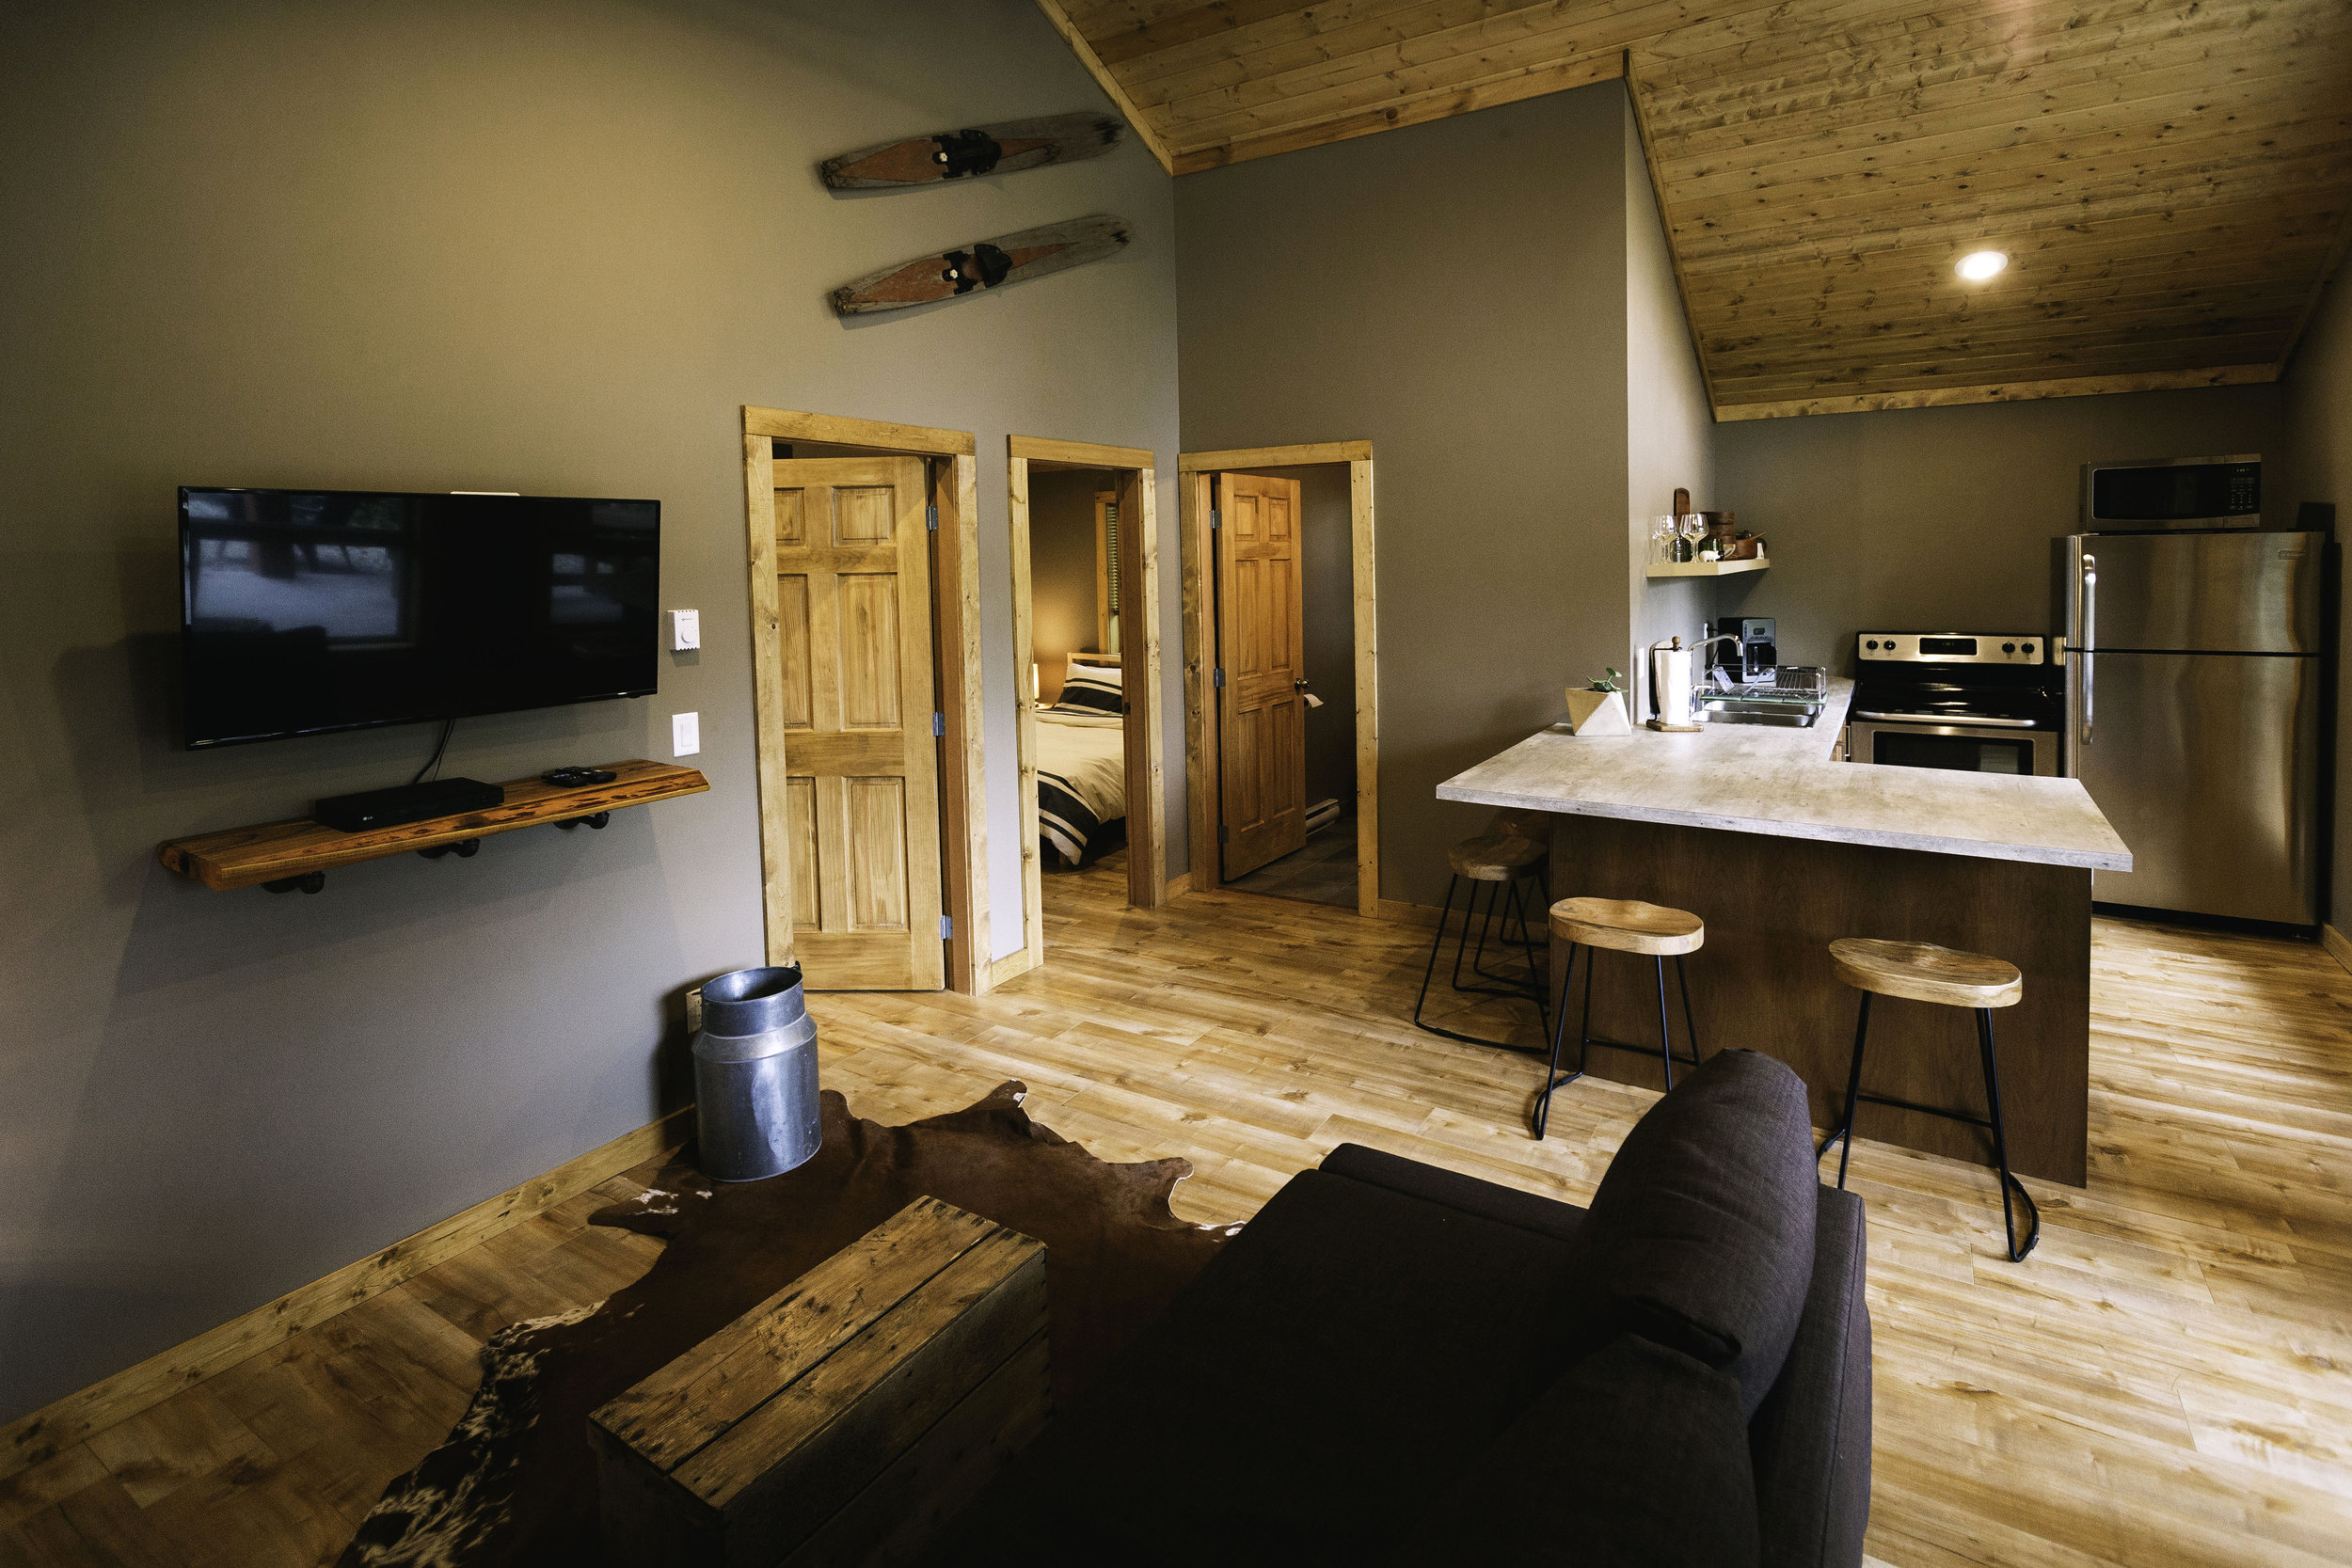 white-lake-cabins-two-bedroom-interior-68.jpg